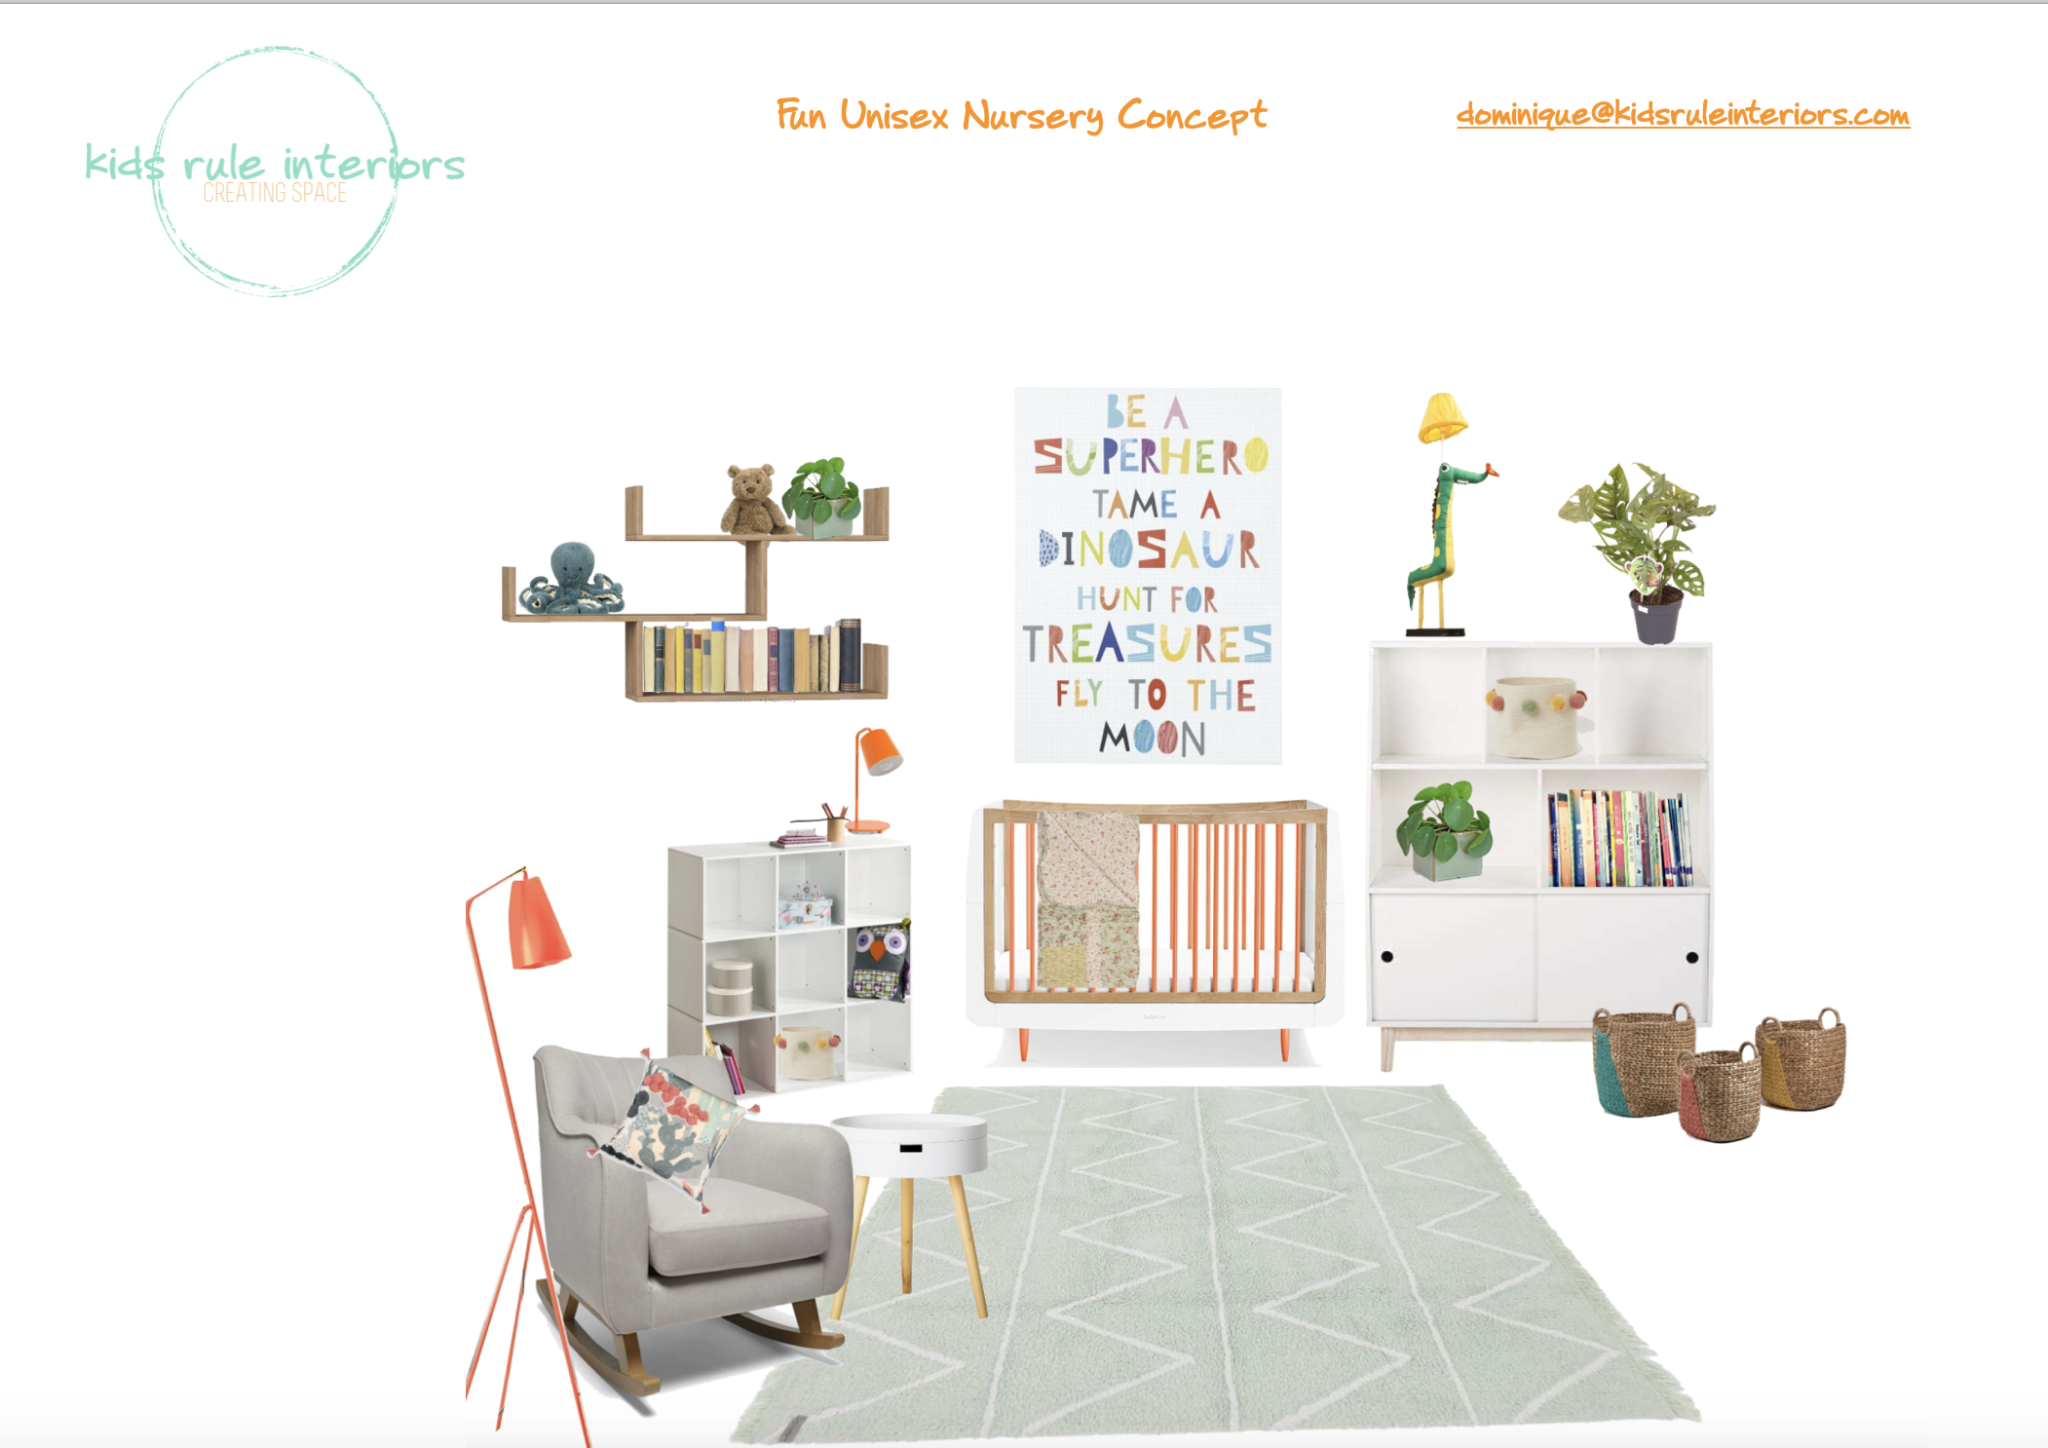 a light, bright, fun nursery concept with pops of orange and soft- edged furniture and circular accents.